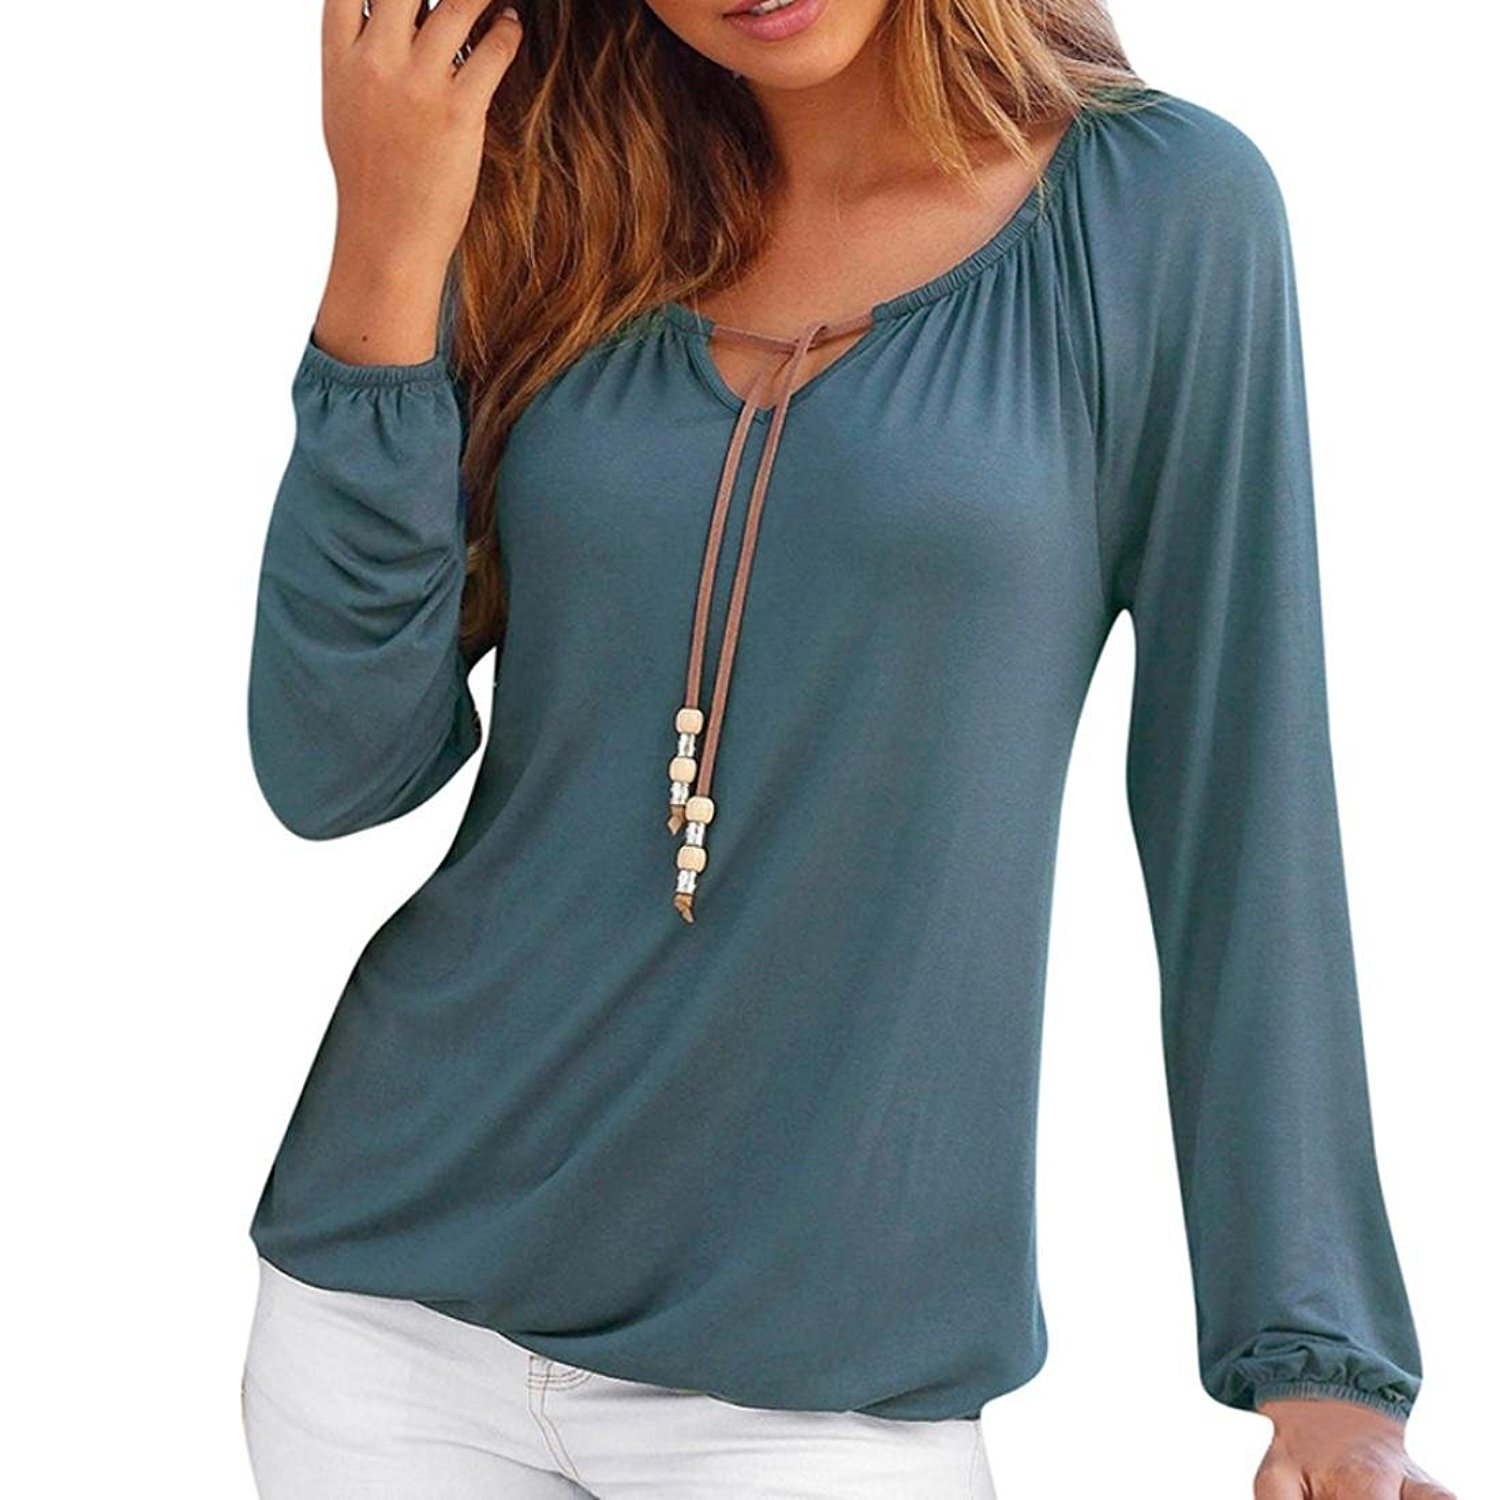 df28cb6ad2b18c Get Quotations · DaySeventh Women s Sexy V Neck Loose Tops Bandage Long  Sleeve Elegant Tops T-Shirt